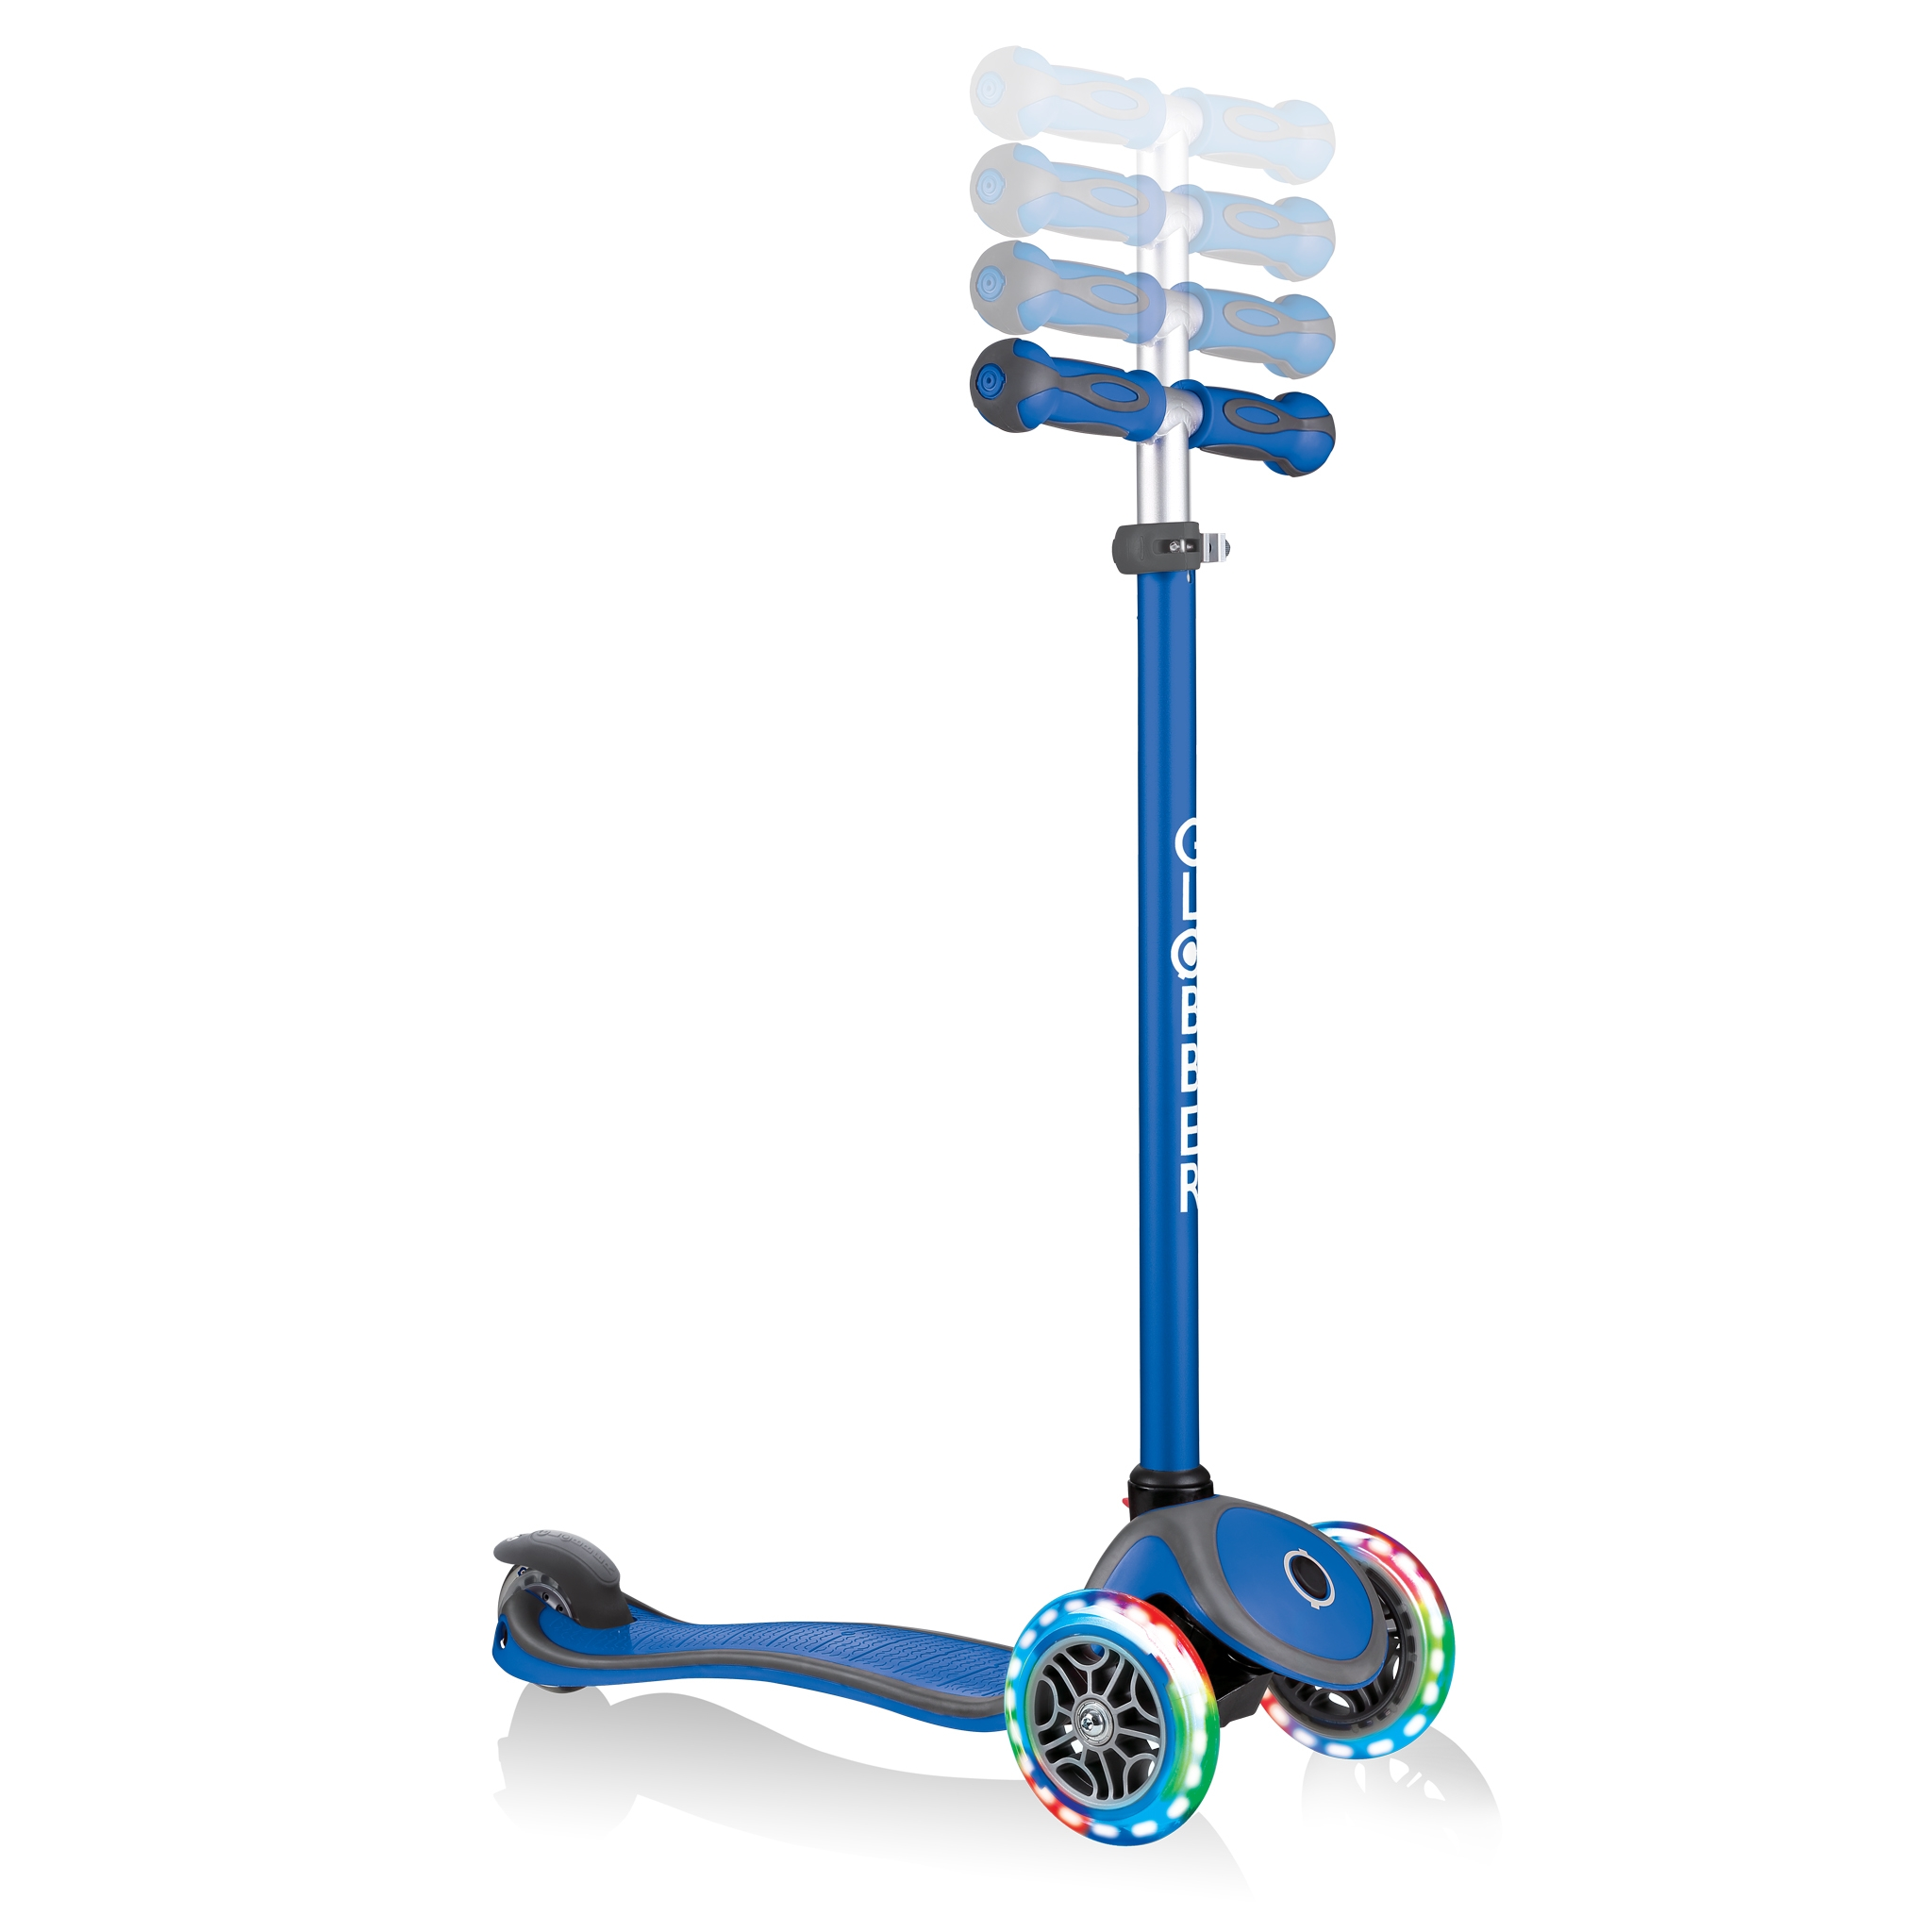 GO-UP-COMFORT-LIGHTS-scooter-with-seat-4-height-adjustable-T-bar-navy-blue 5